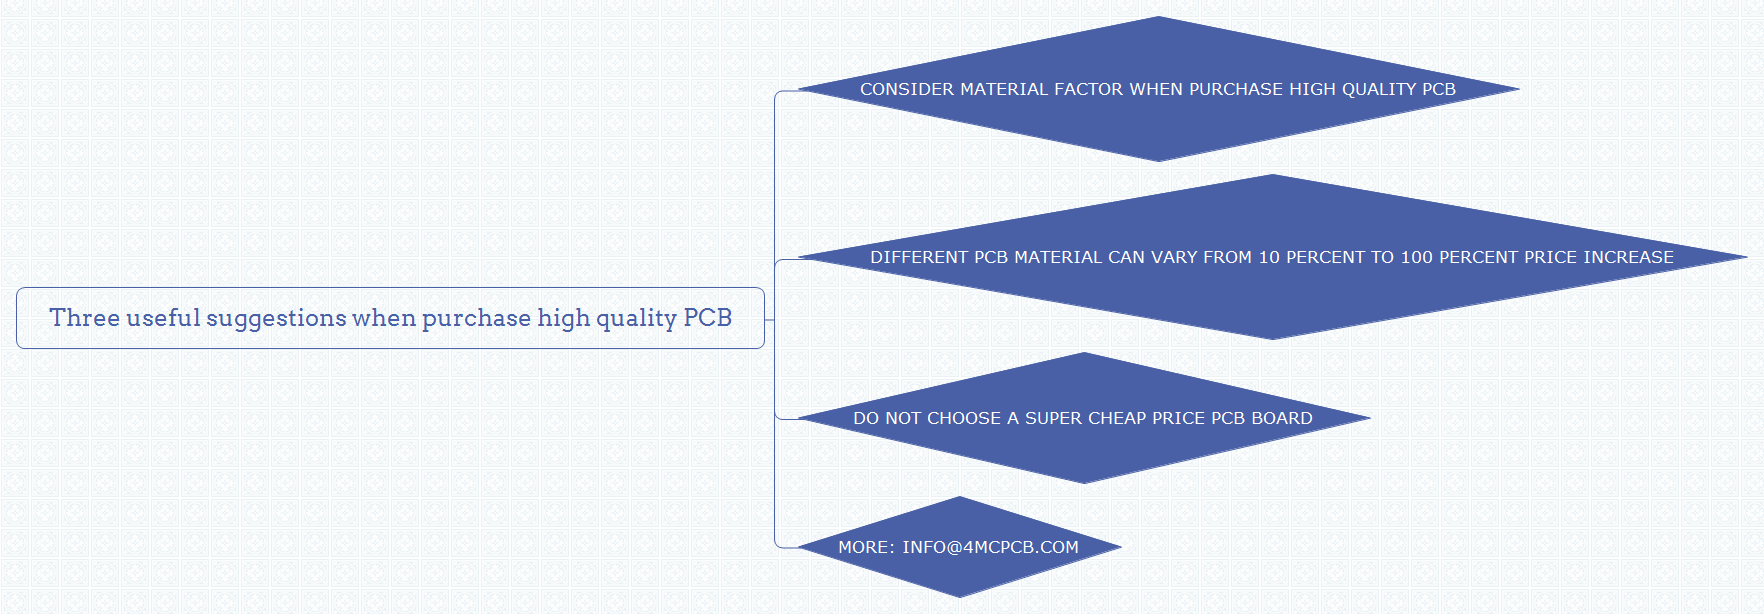 Three useful suggestions when purchase high quality PCB